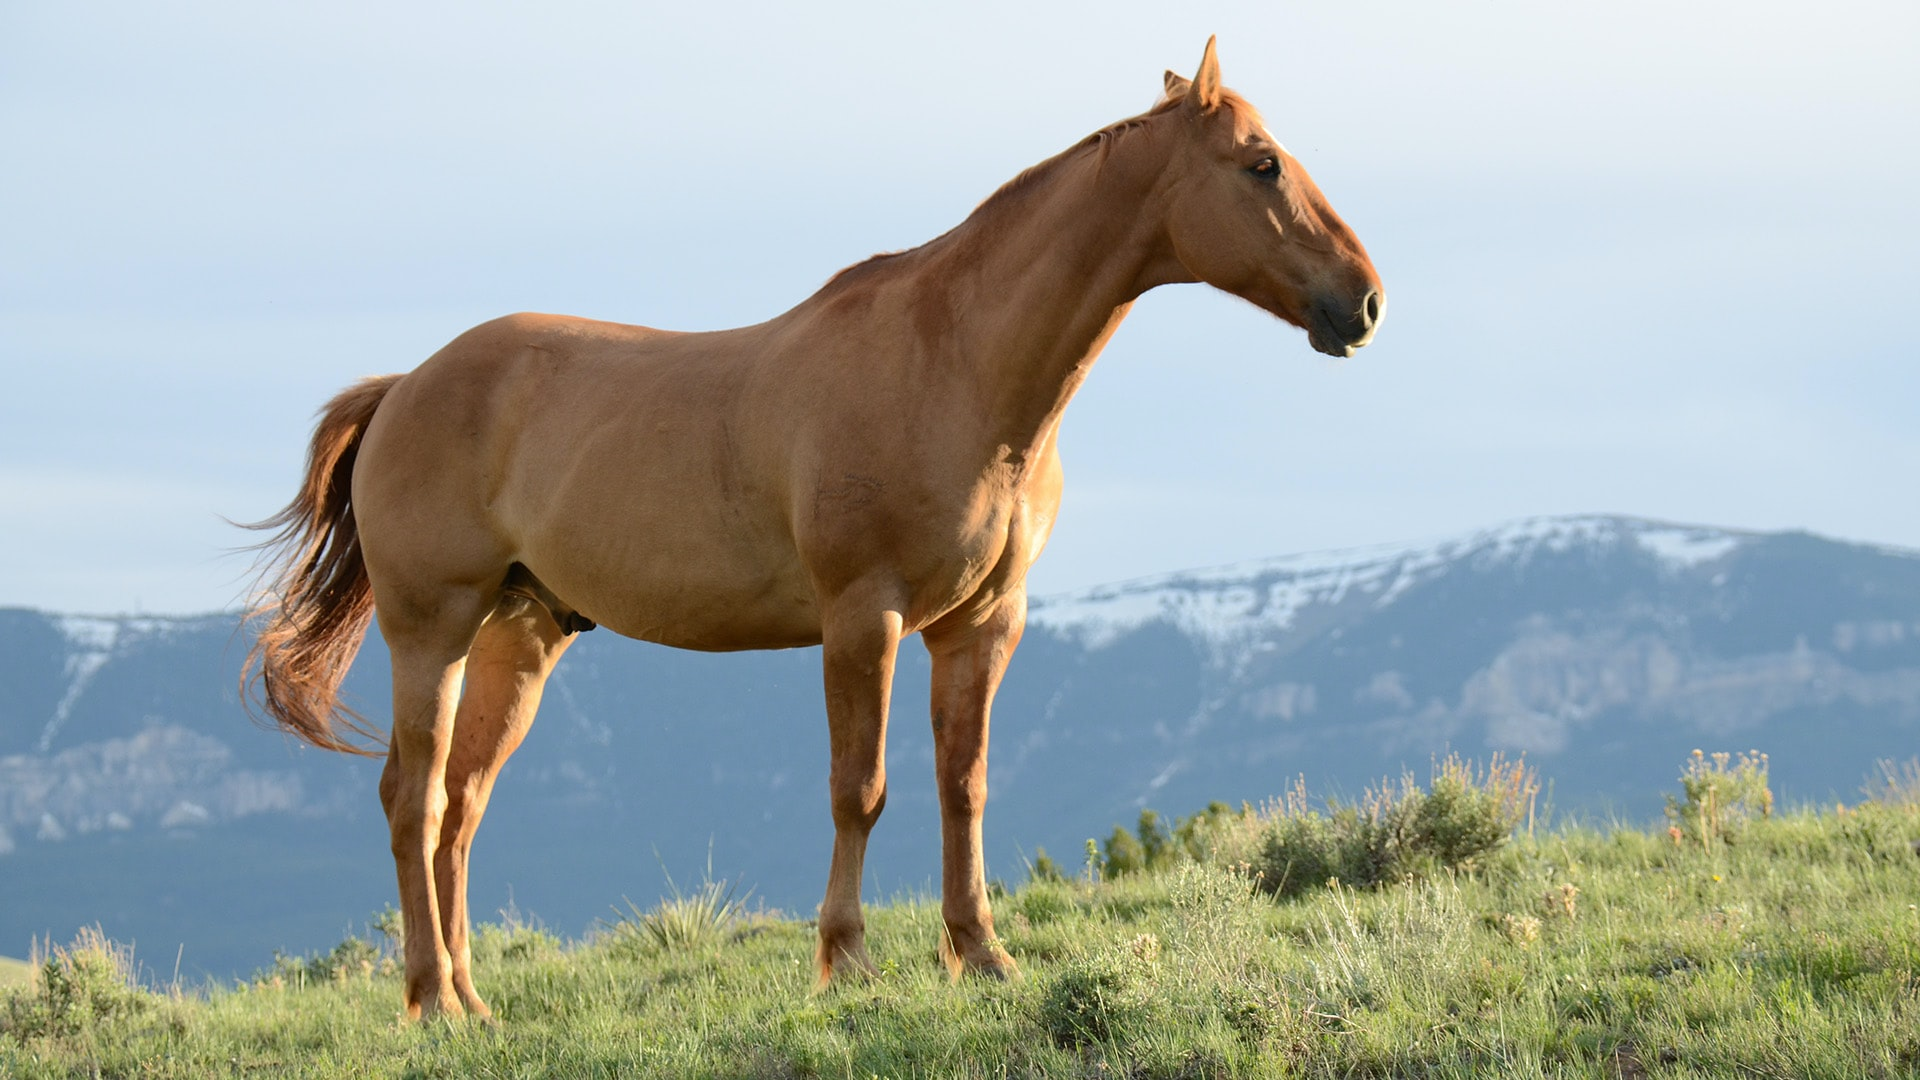 A light chestnut horse standing on a green slope with a snowy mountain range in the distance